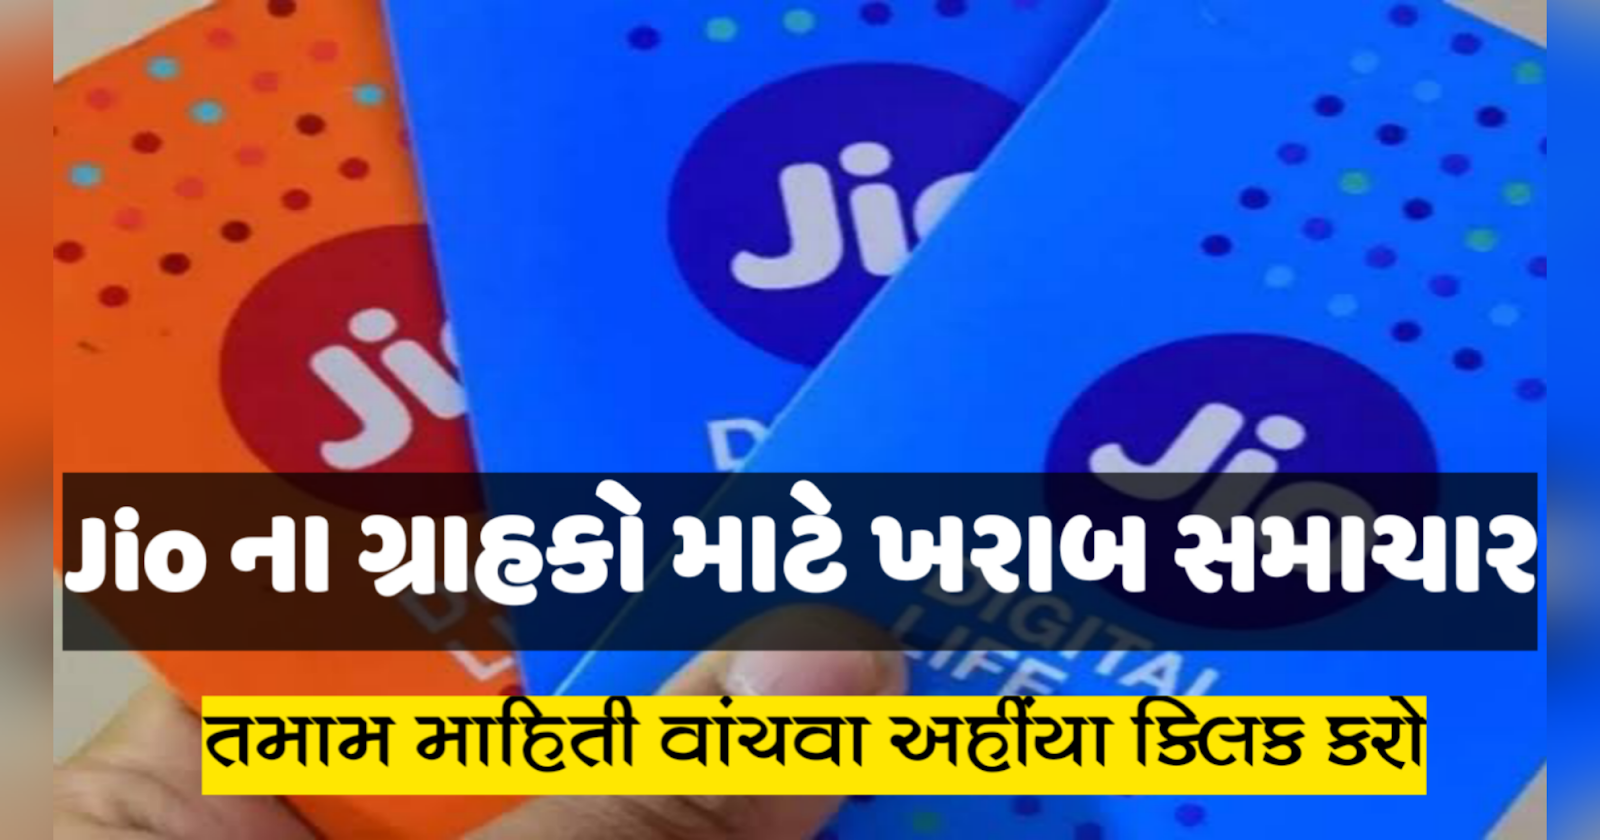 Bad News For JIO User's